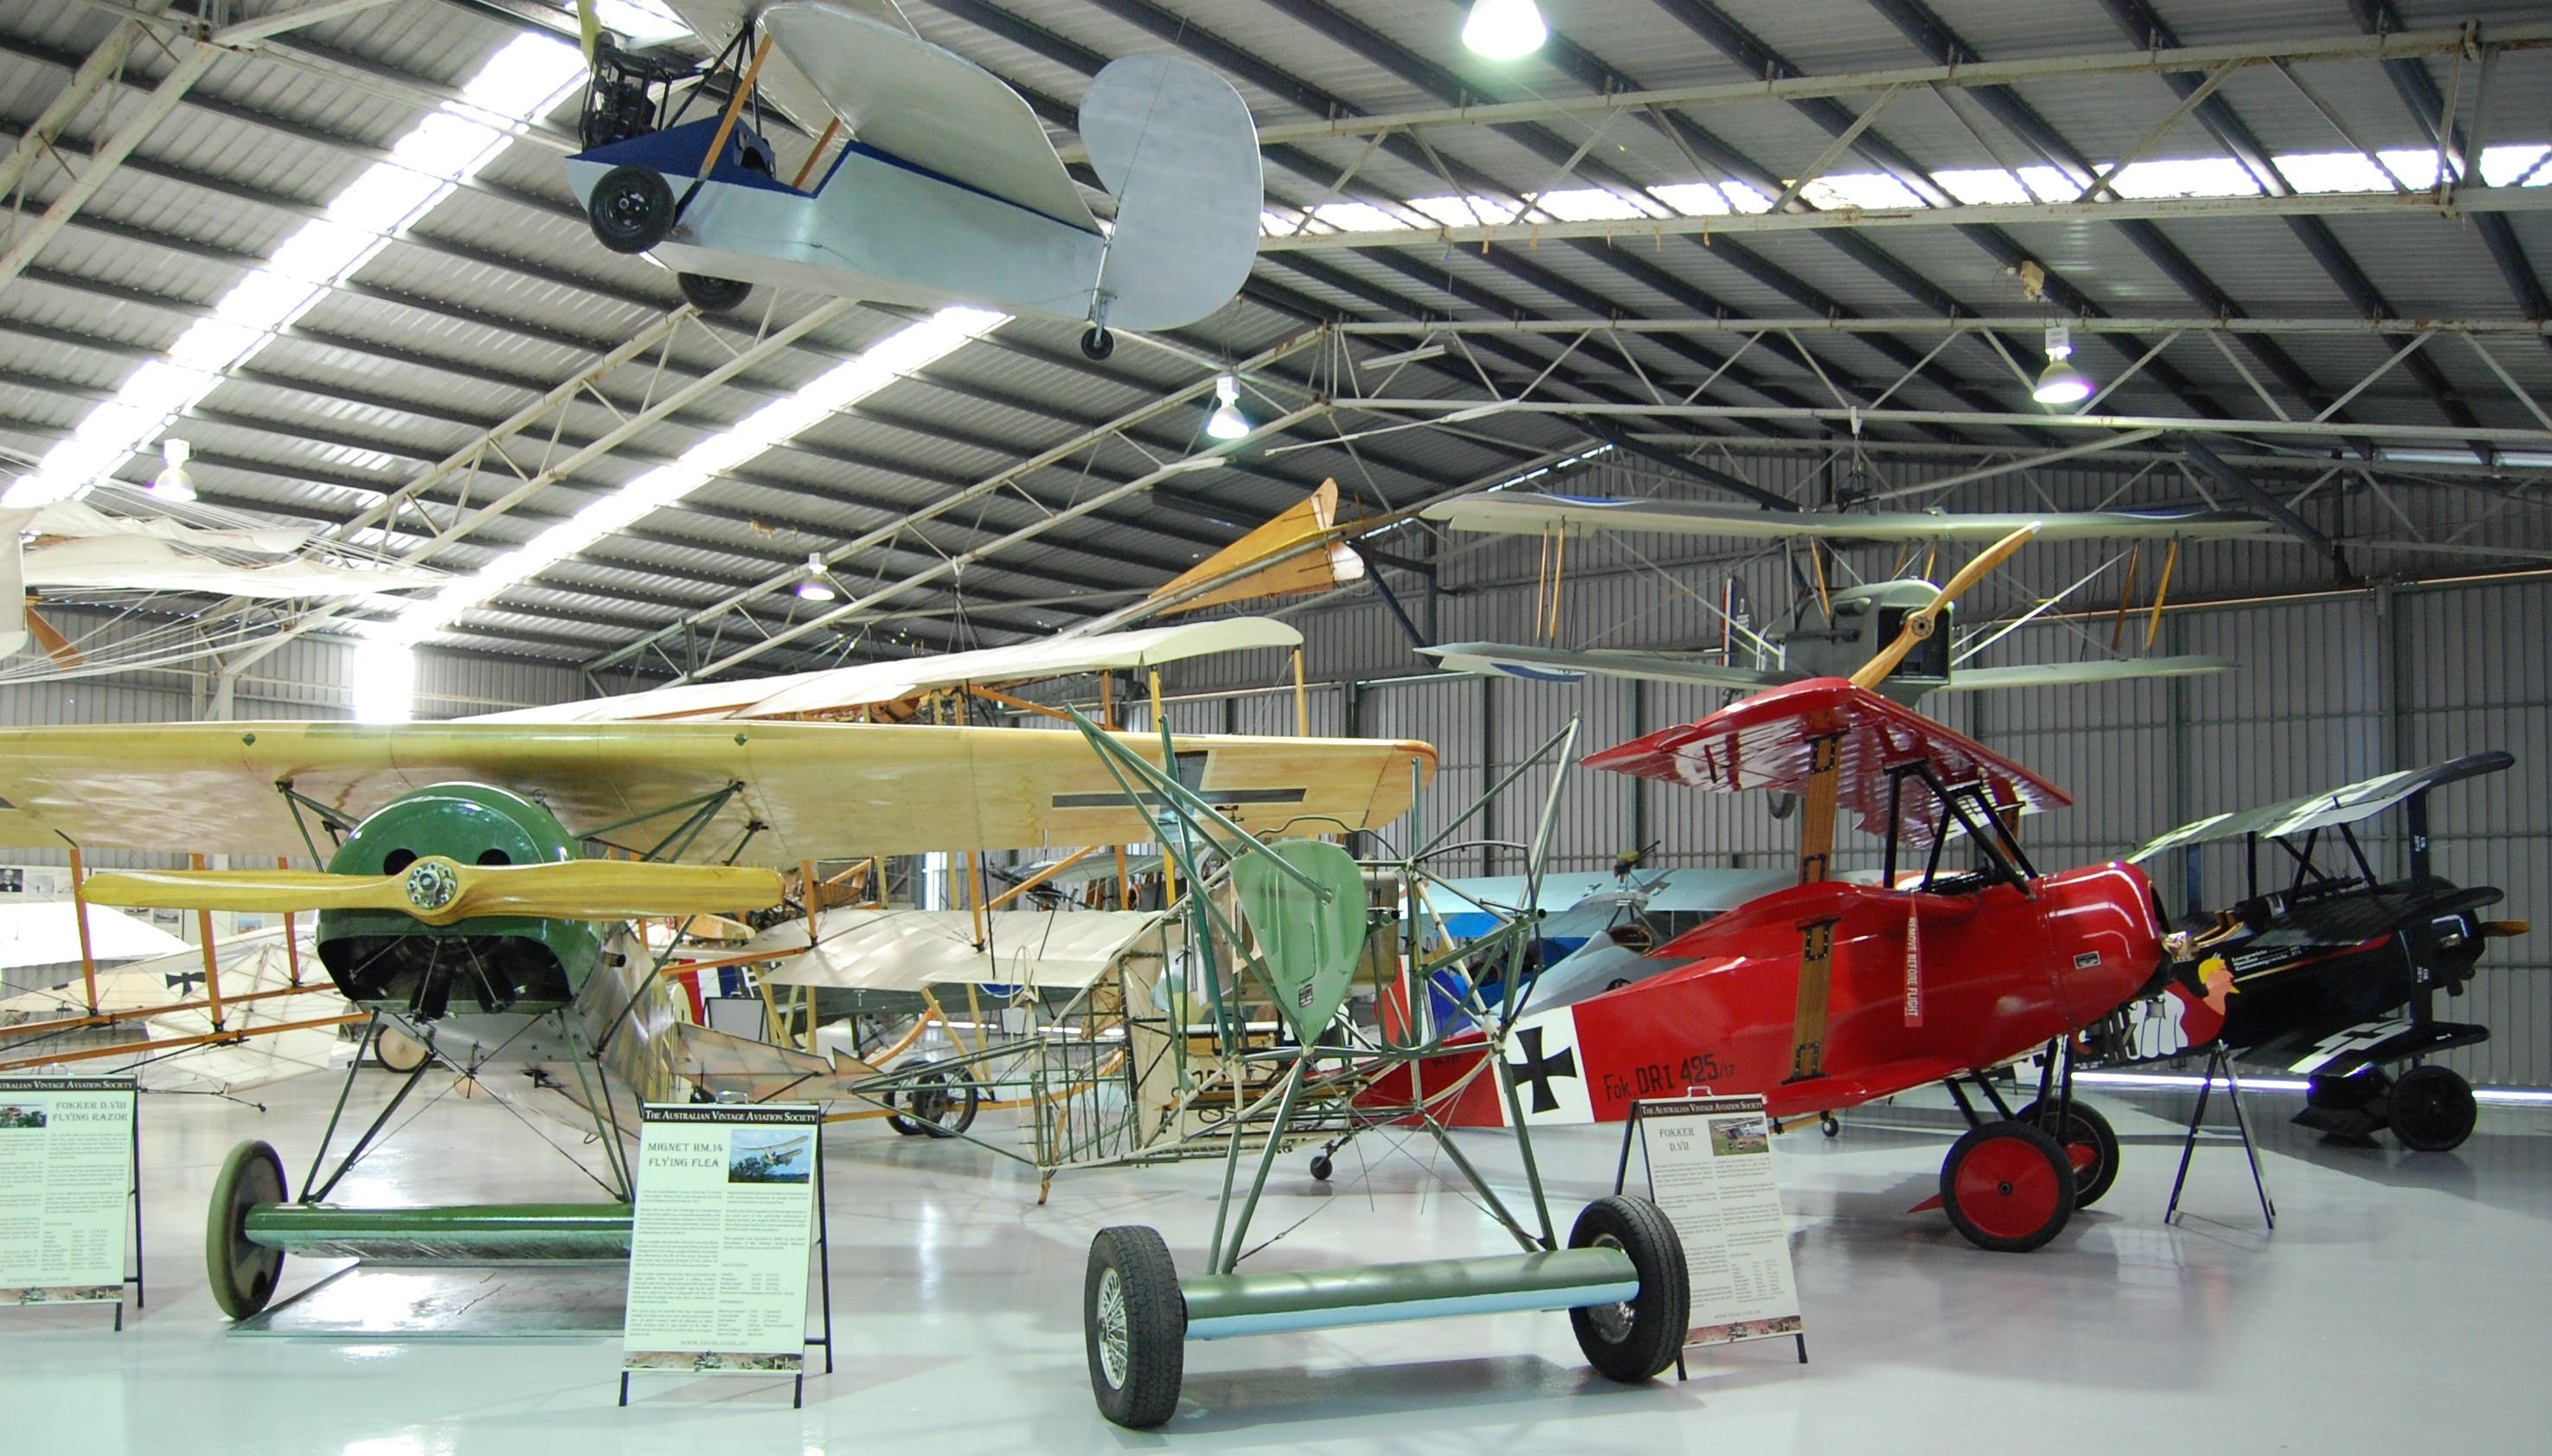 The Australian Vintage Aviation Society Museum - Accommodation in Brisbane